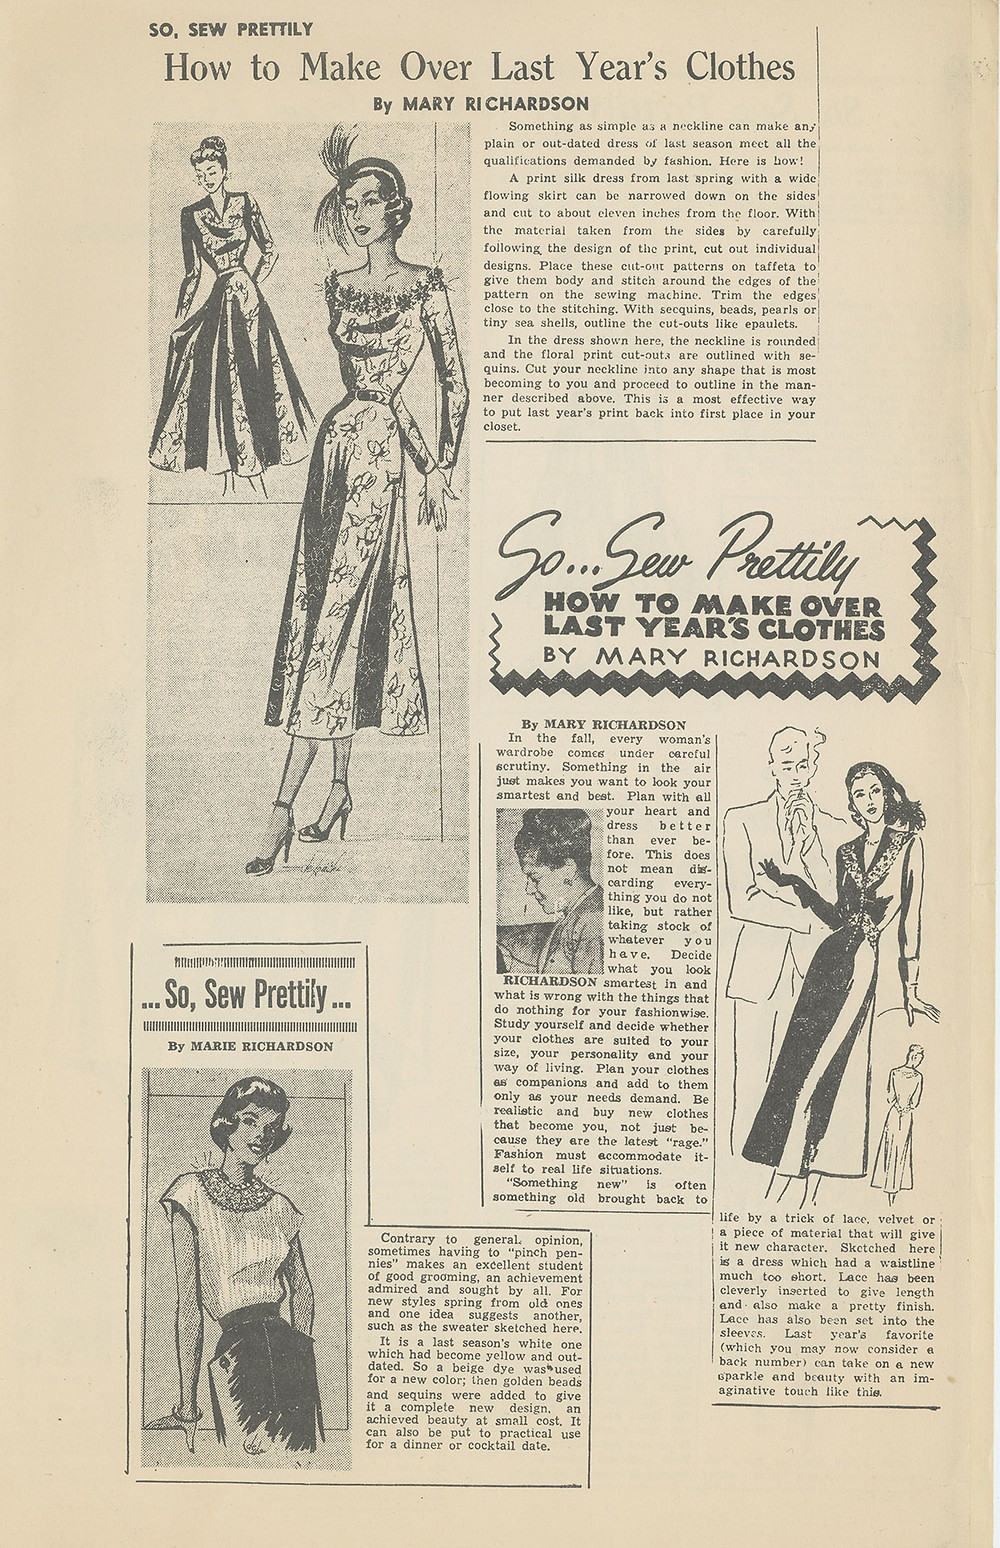 """Mary Richardson's fashion column, """"So, Sew Prettily,"""" from the Louisville Defender"""